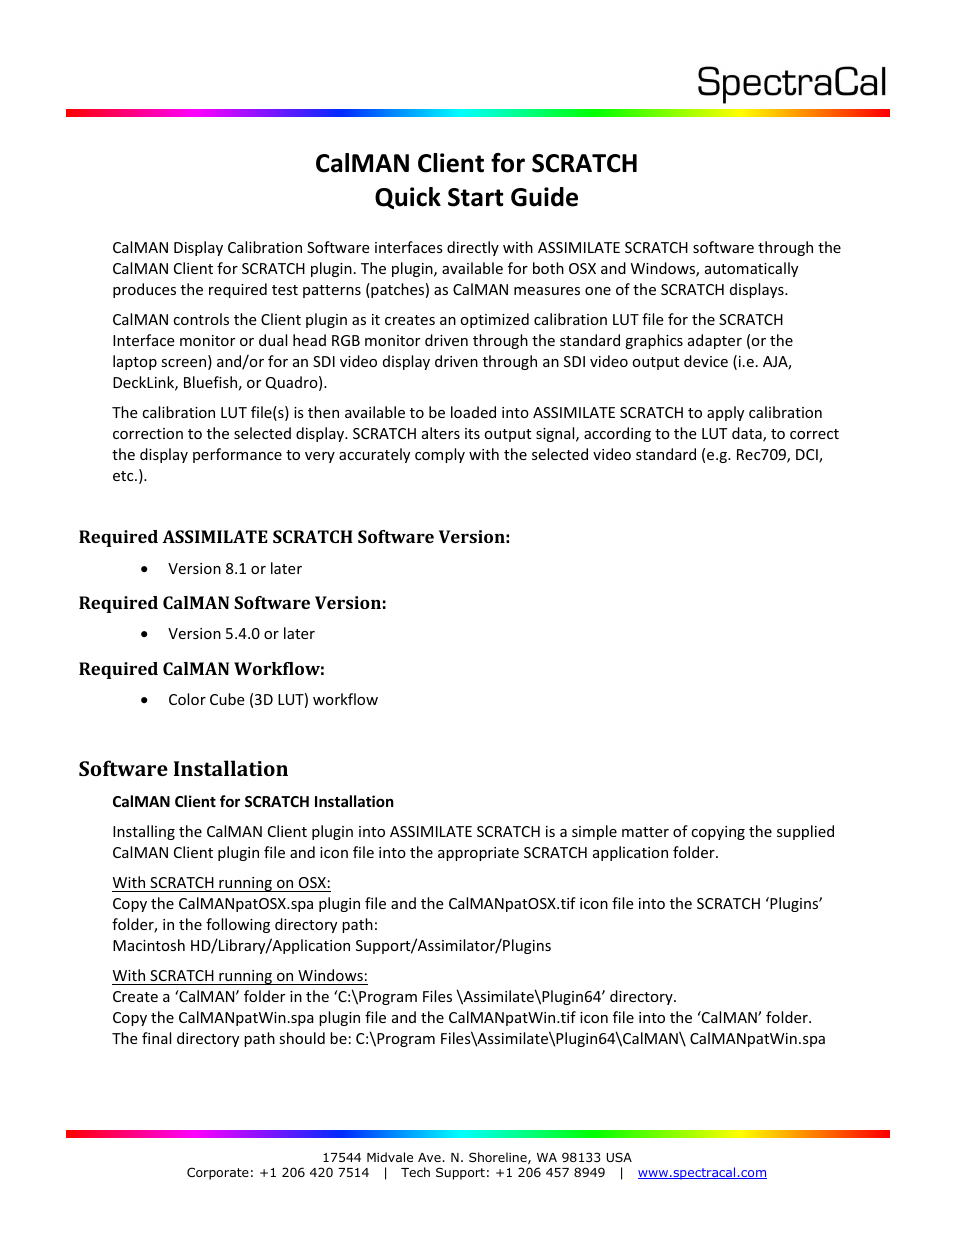 SpectraCal CalMAN for SCRATCH Plug-In User Manual | 14 pages